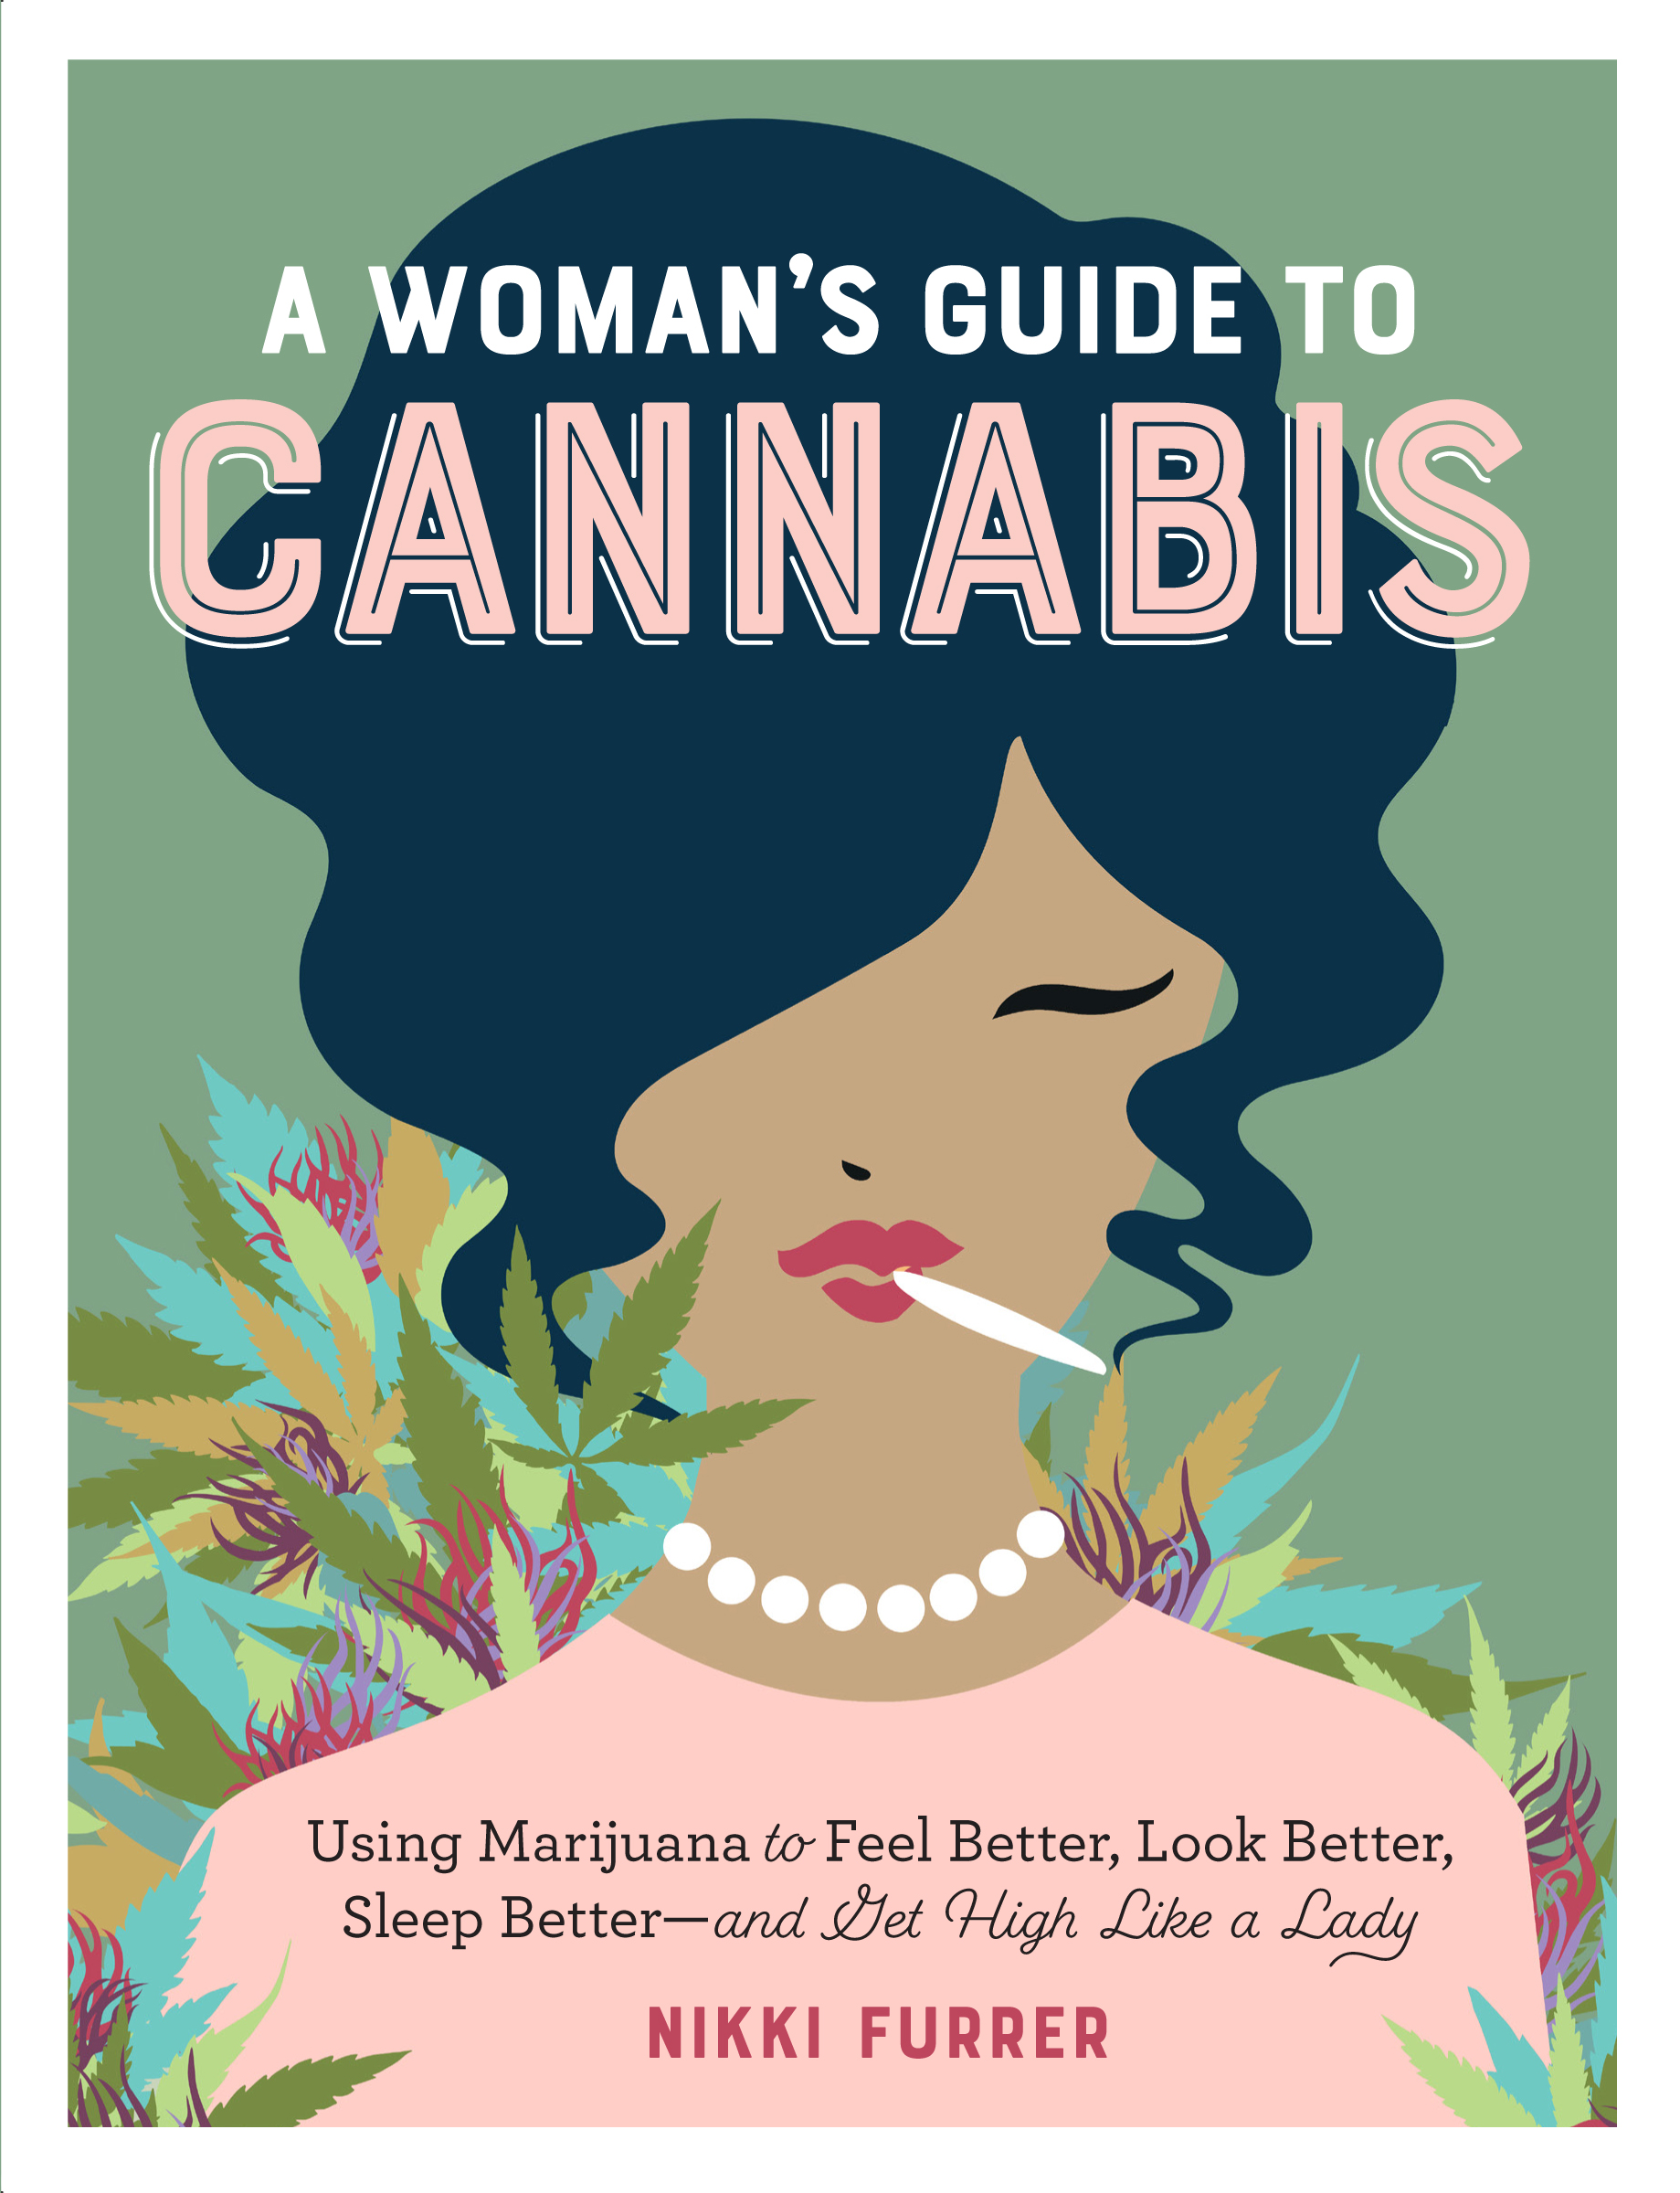 A Woman's Guide to Cannabis by Nikki Furrer